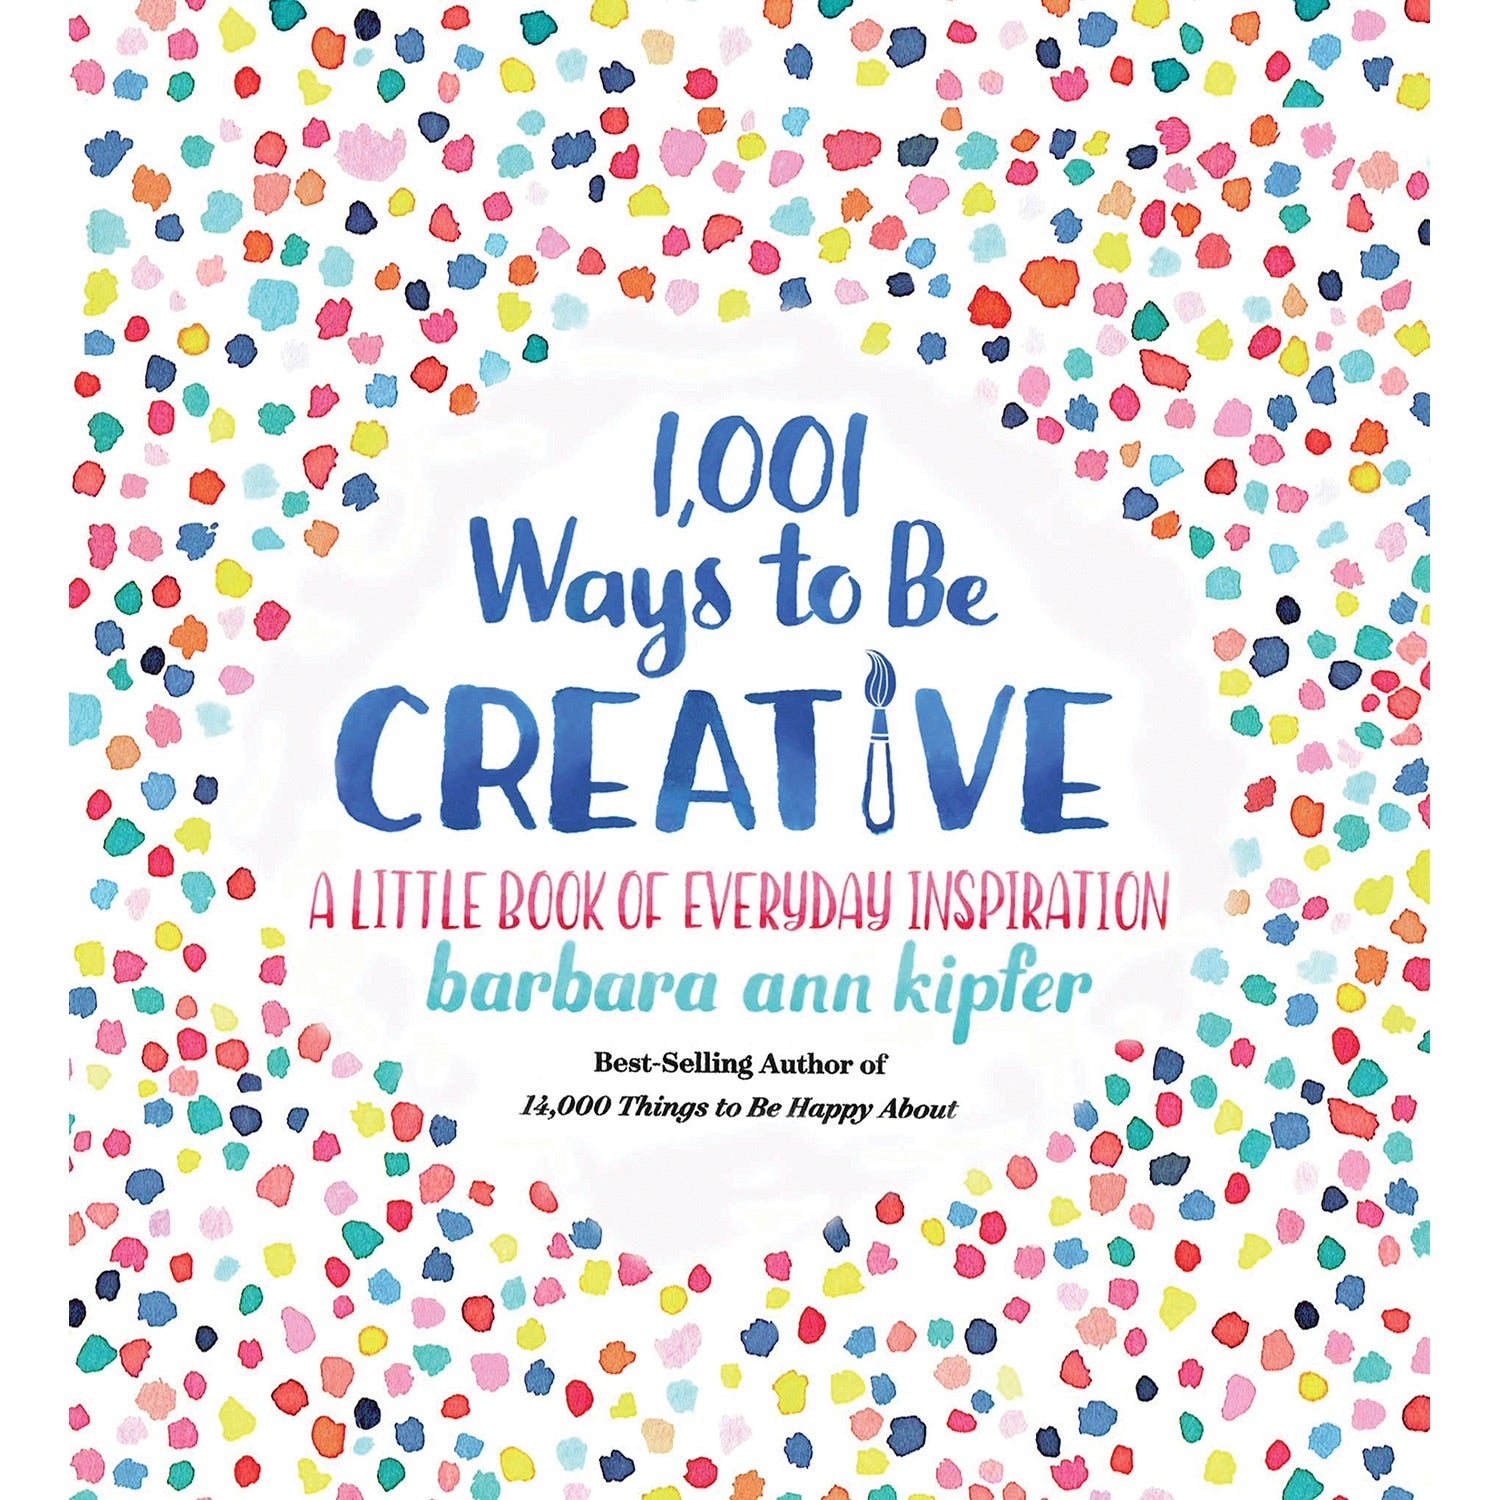 1001 Ways To Be Creative: A Little Book of Everyday Inspiration, Barbara Ann Kipfer